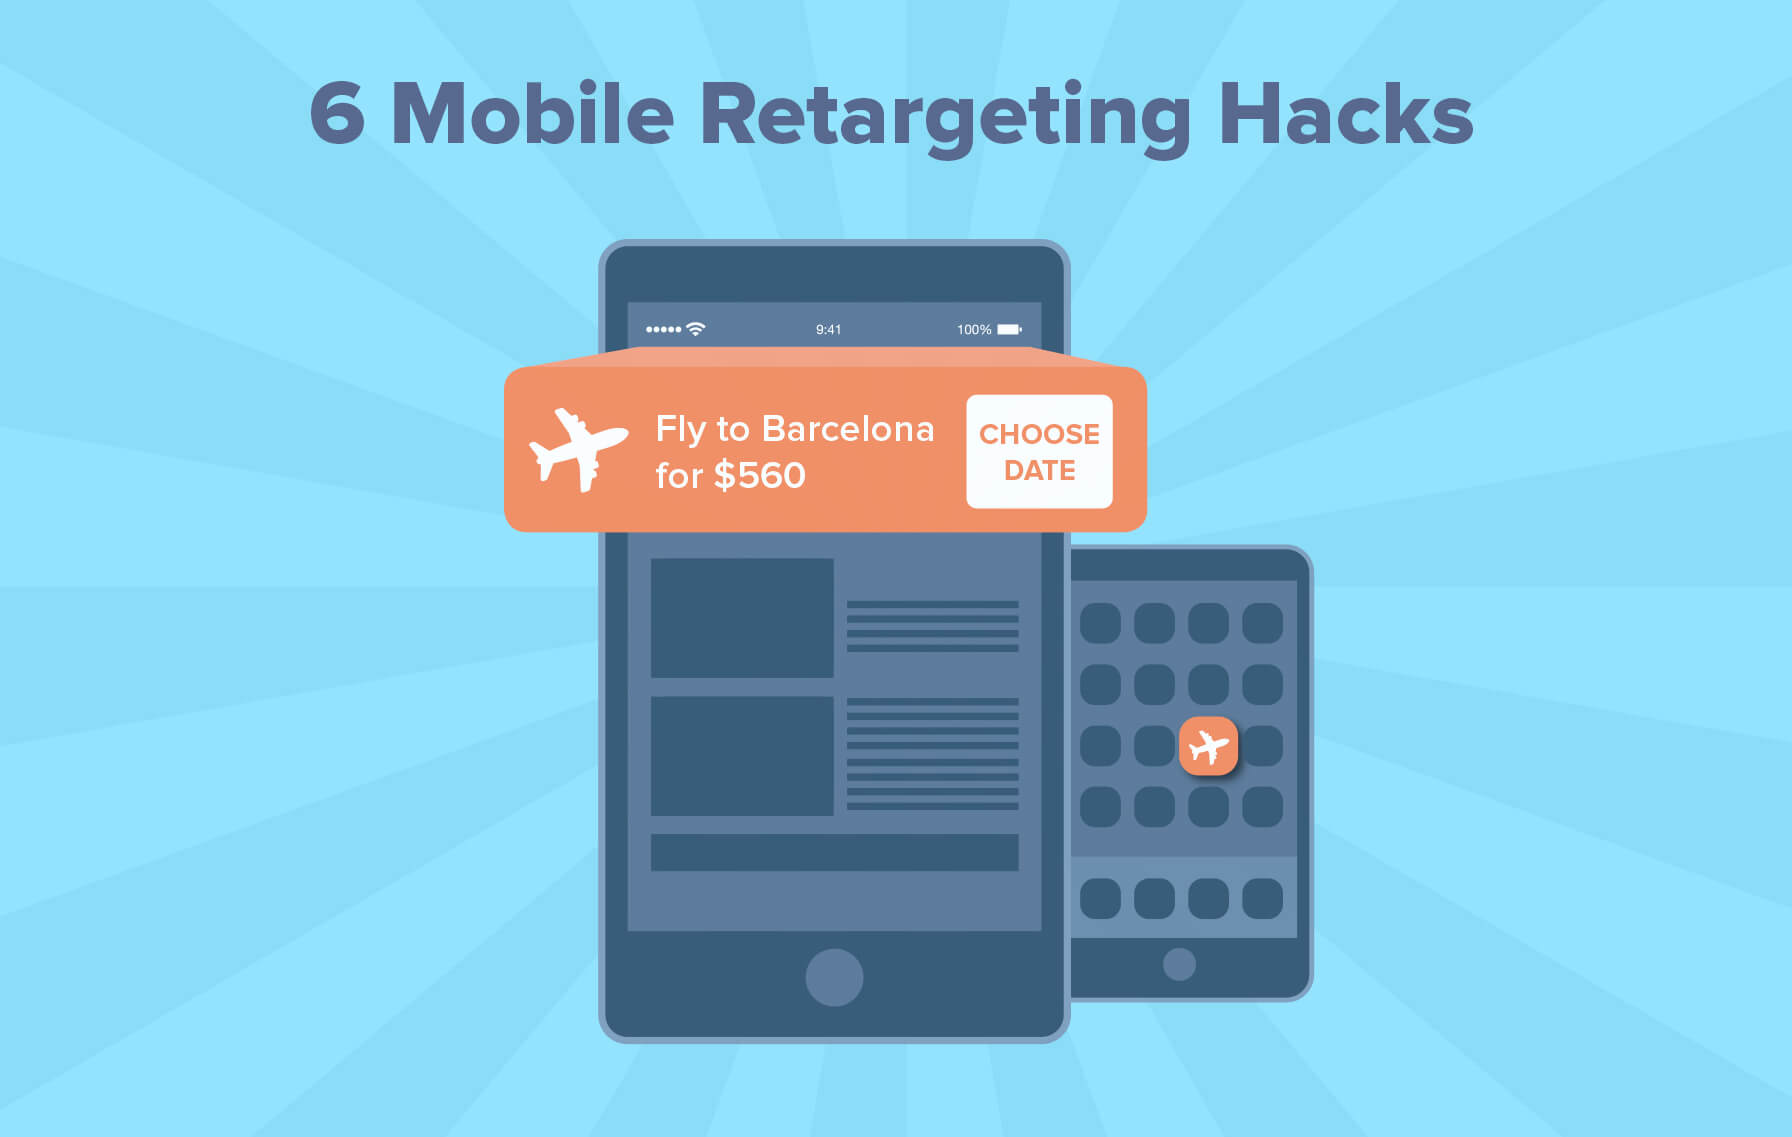 6 Hacks to Make the Most of Mobile Retargeting